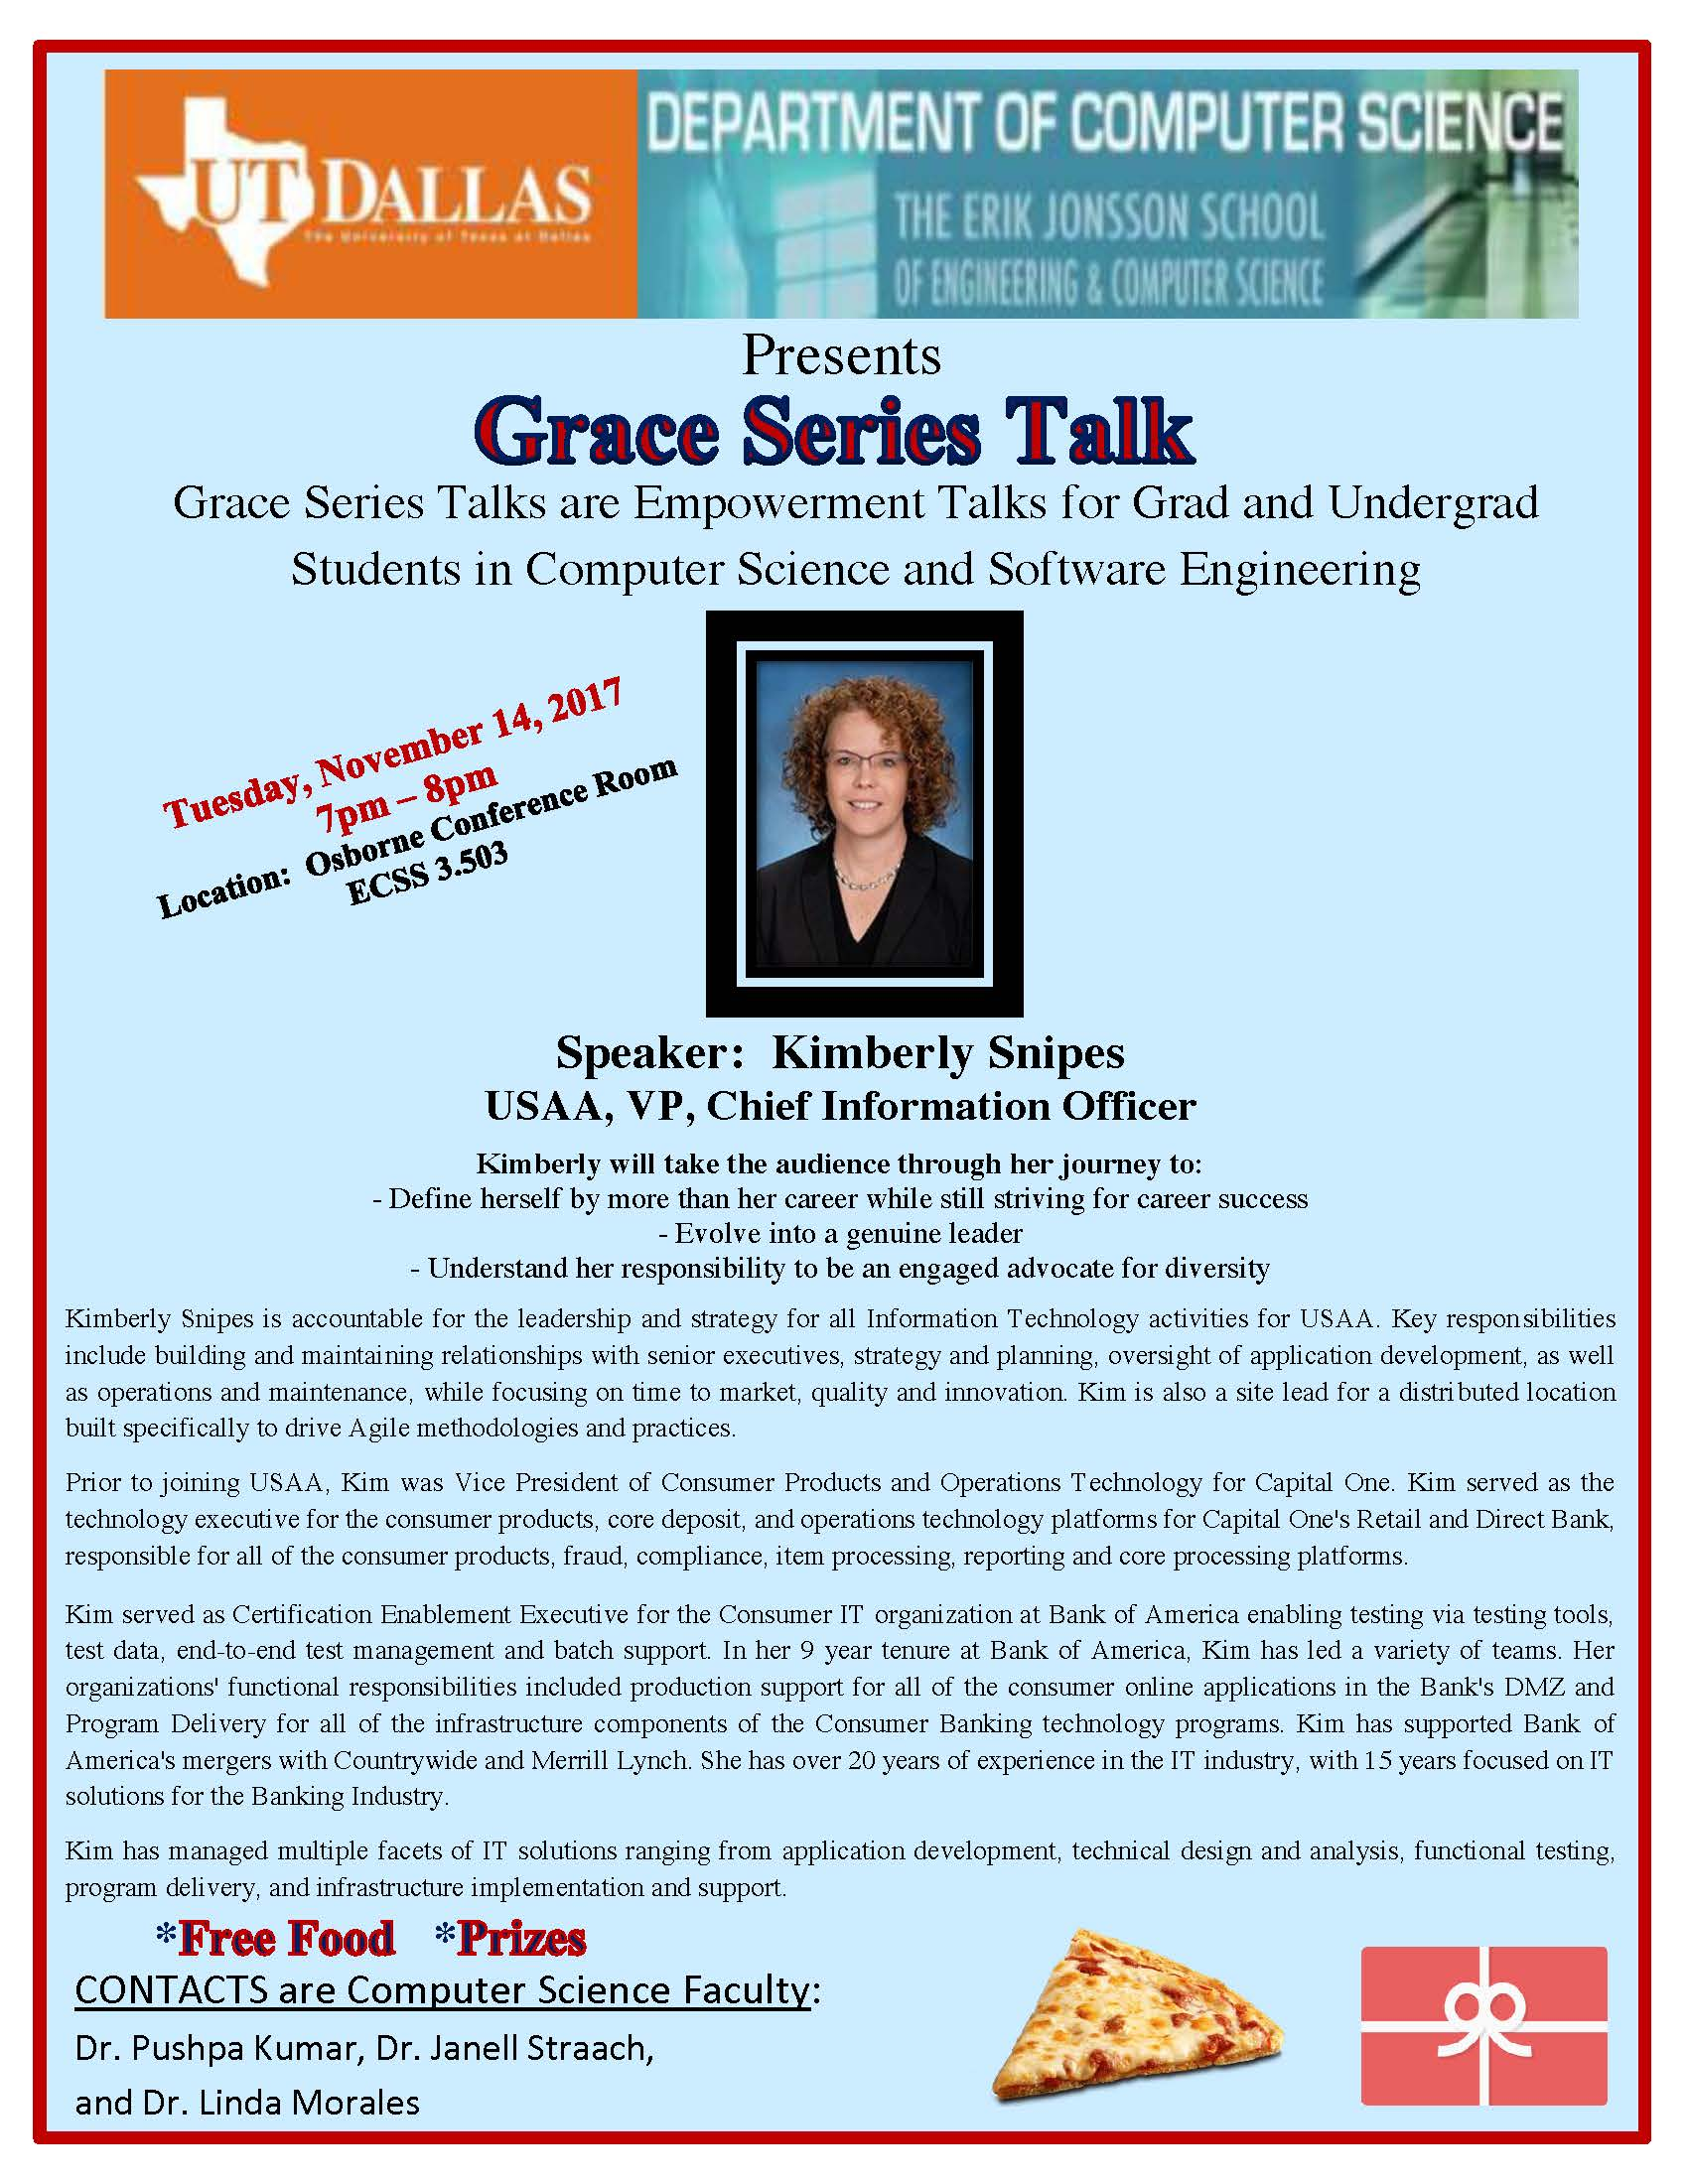 Grace Series Presents: Kimberly Snipes, USAA, VP, Chief Information Officer @ ECSS 3.503 (Osborne Conference Room)